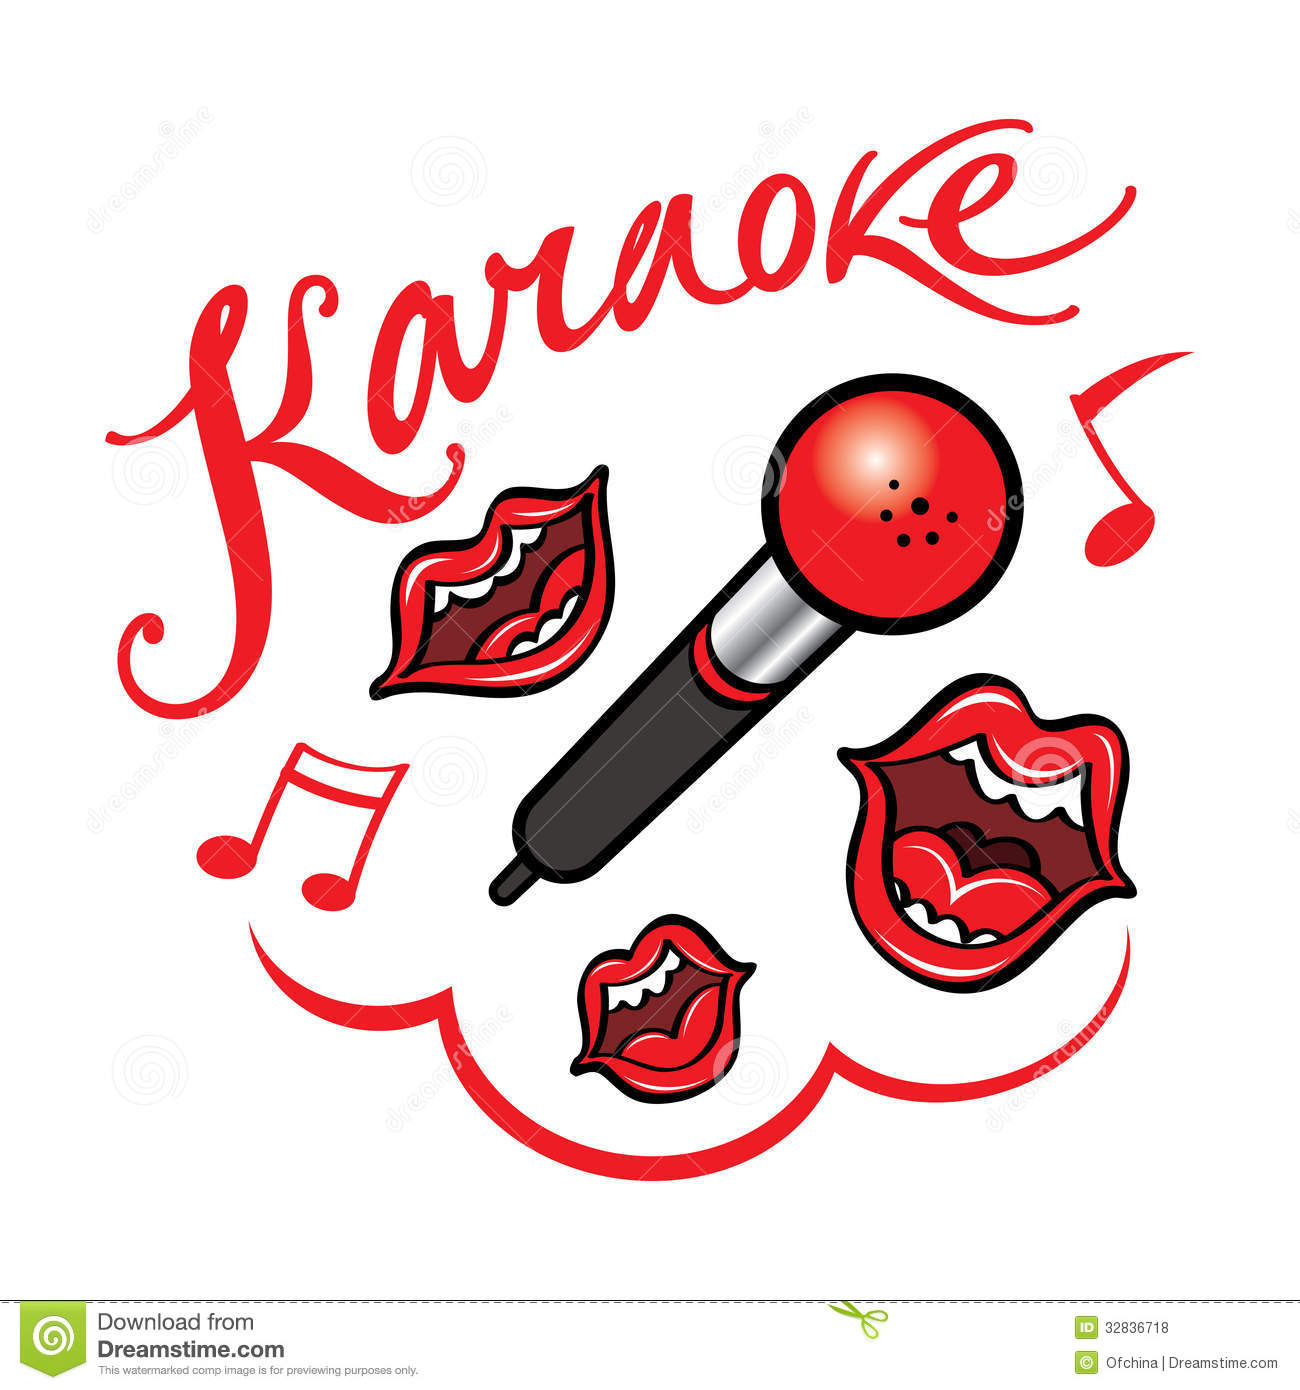 Karaoke Royalty Free Stock Photos - Image: 32836718